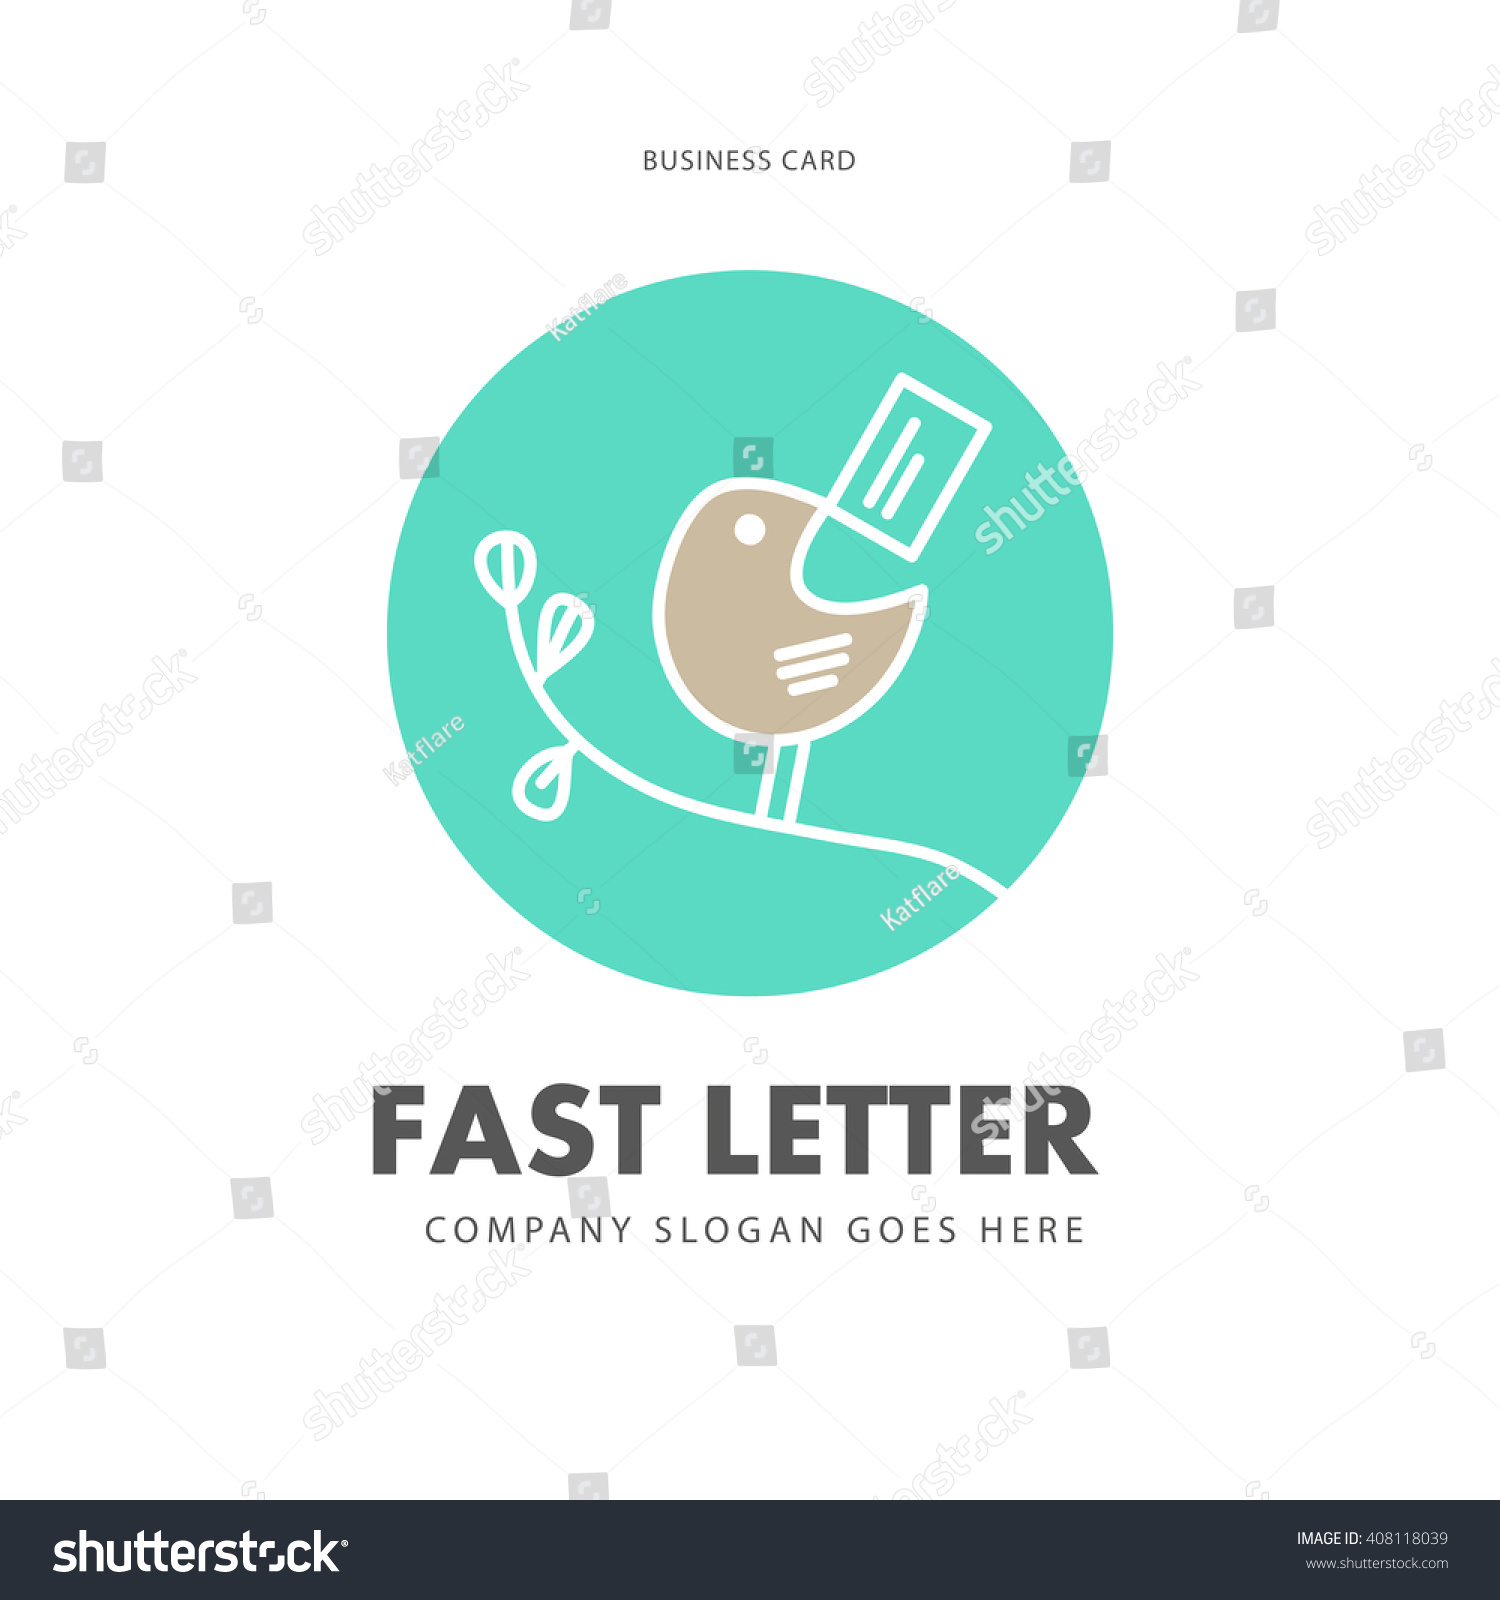 Simple Flat Business Card Express Mail Stock Illustration 408118039 ...